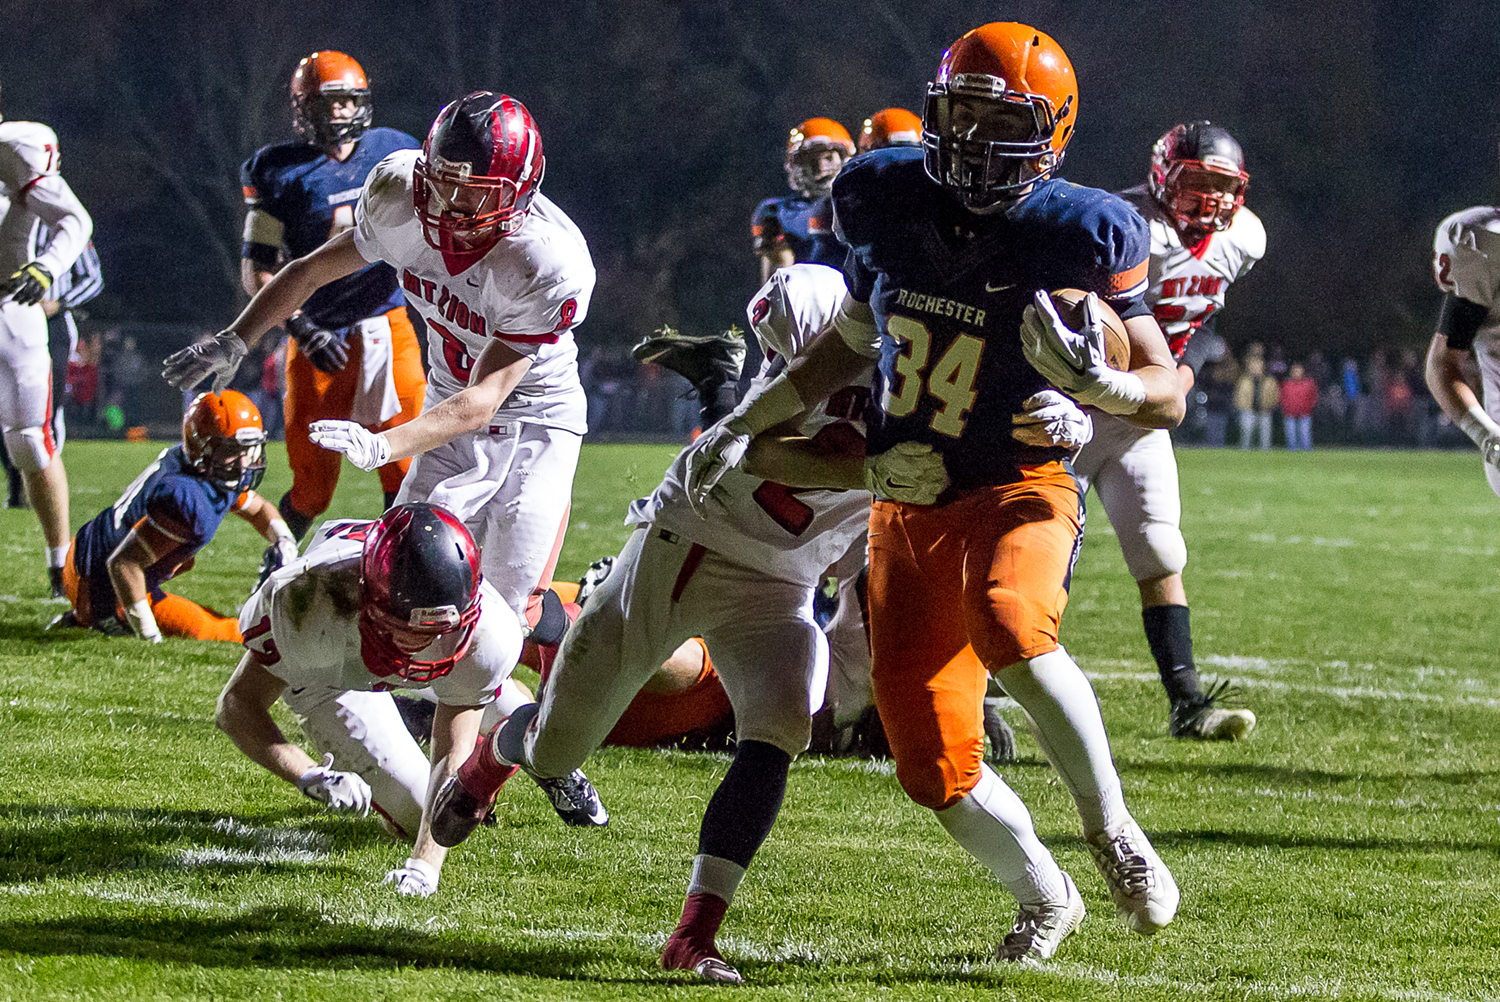 Rochester's Evan Sembell (34) breaks a tackle from Mt. Zion's Charles Kuhle (2) for a touchdown in the first half during the first round of the Class 4A playoffs at Rocket Booster Field, Saturday, Nov. 1, 2014, in Rochester, Ill. Justin L. Fowler/The State Journal-Register